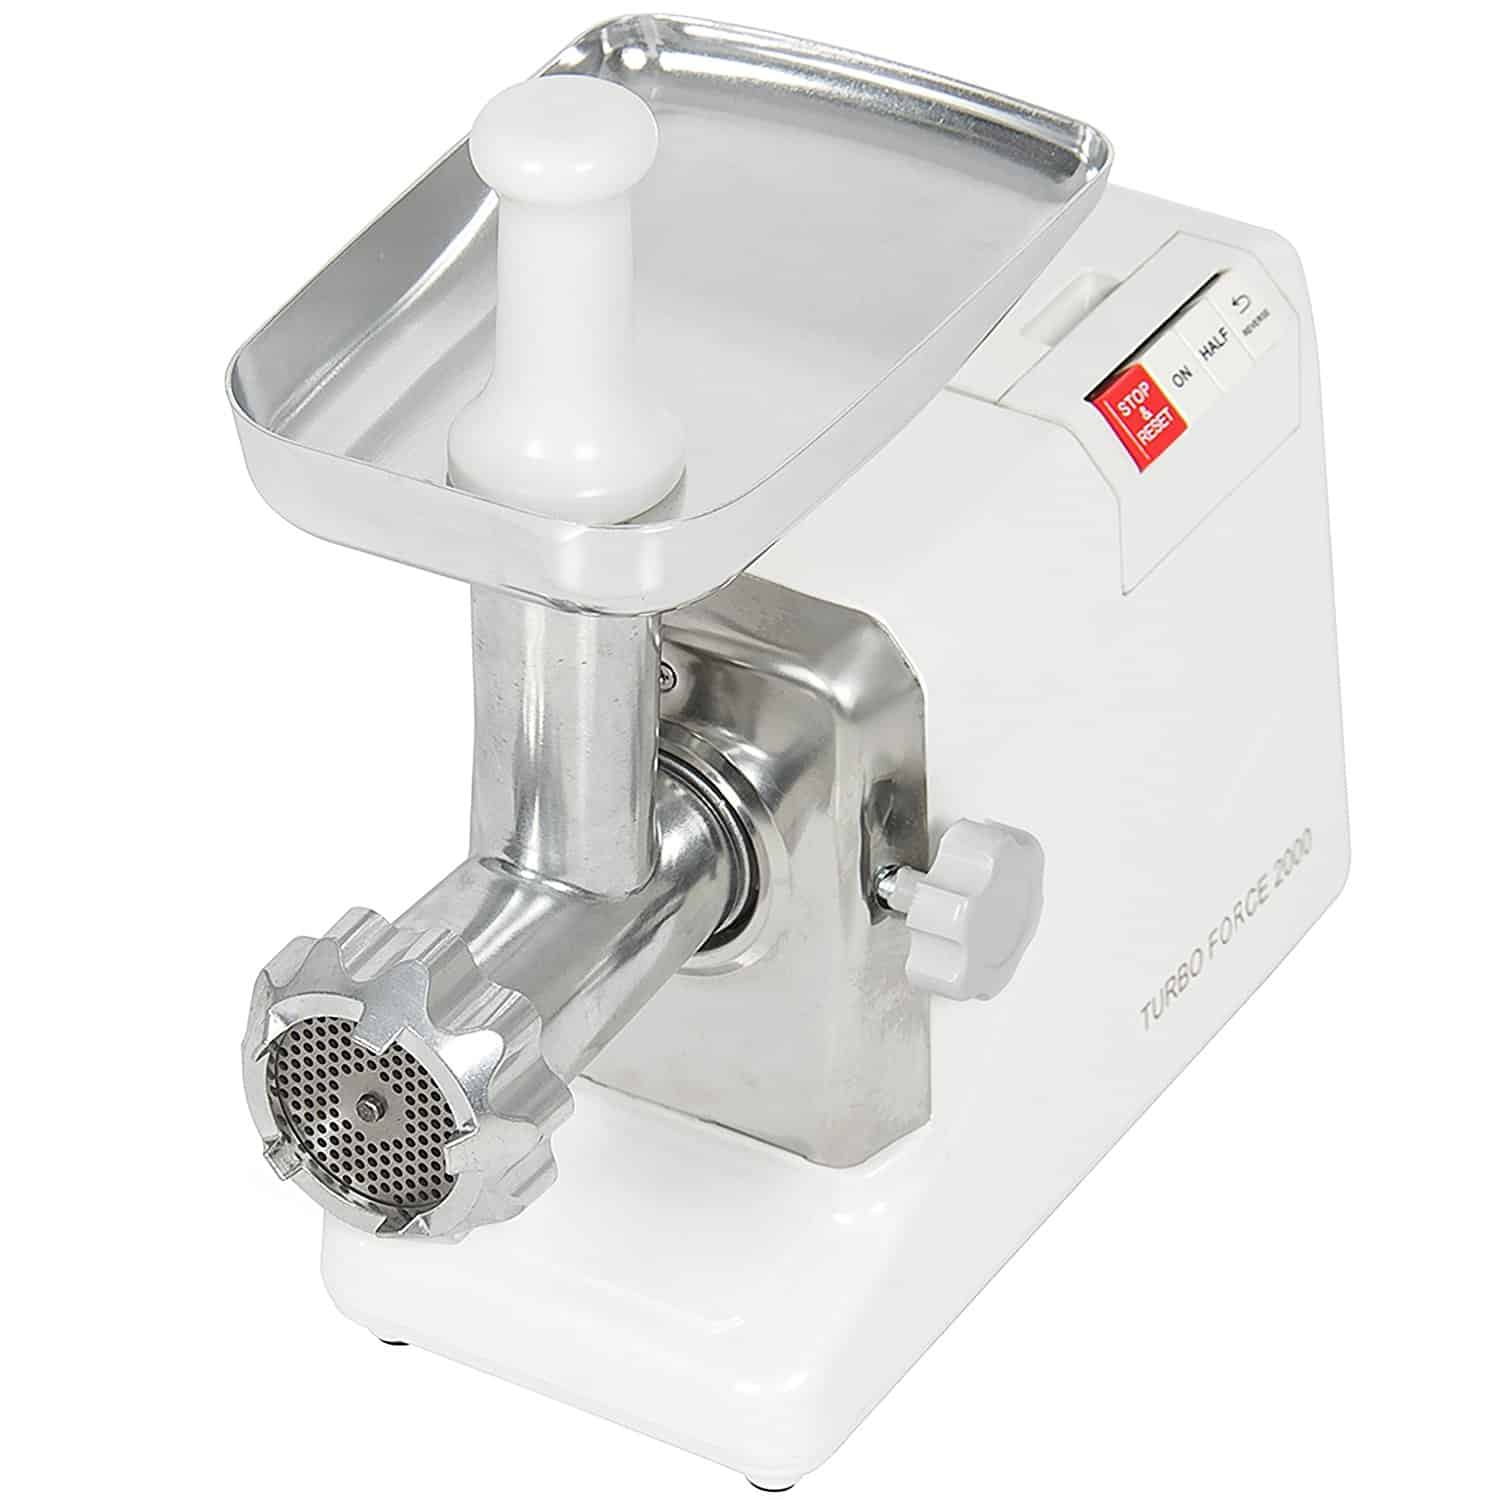 Meat Grinder Electric 2.6 HP 2000 Watt Industrial Meat Grinder